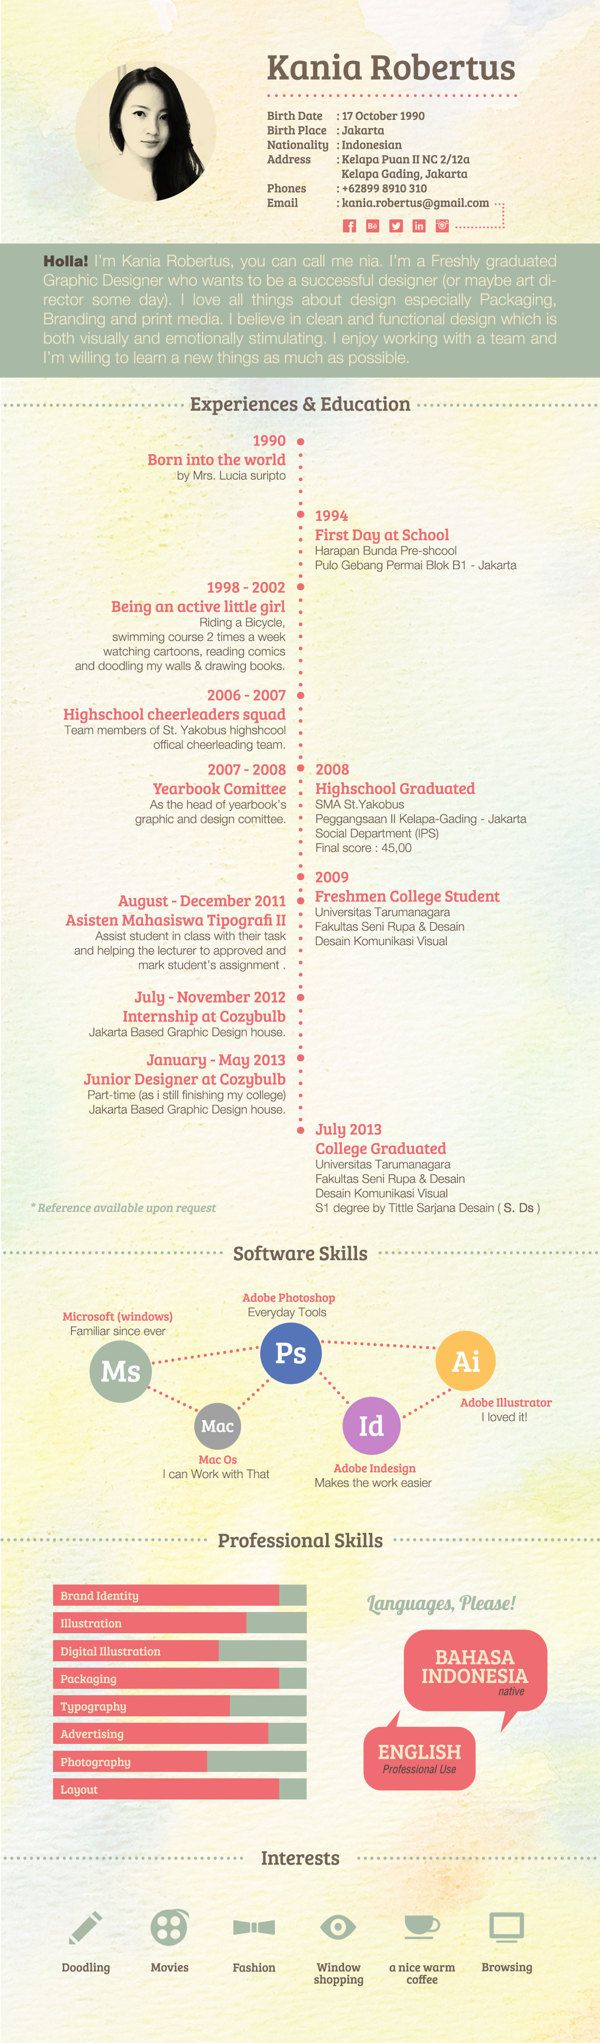 graphic design resume examples photography graphic design web 30 examples of creative graphic design resumes infographics